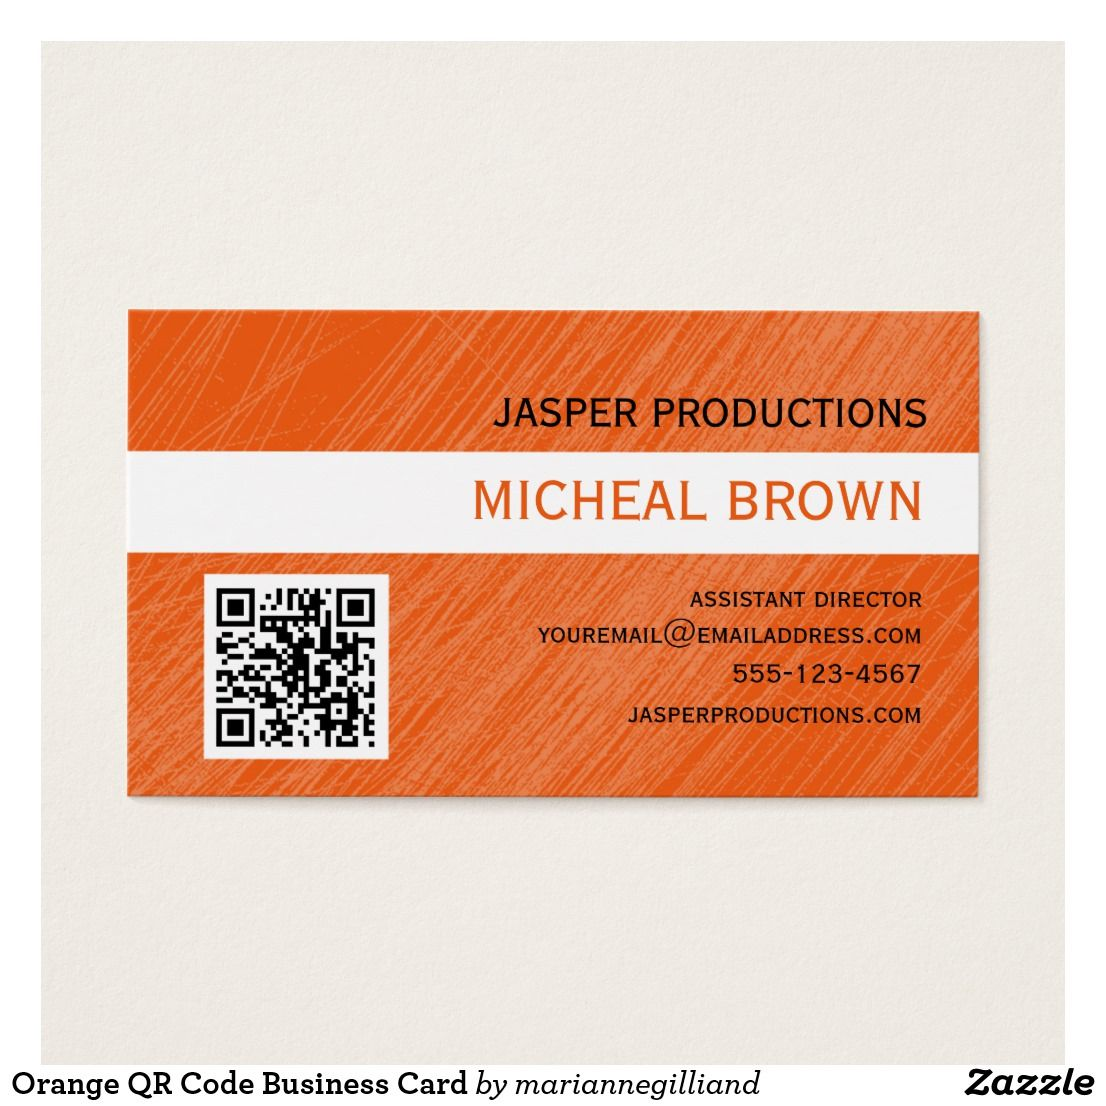 Orange QR Code Business Card   Business cards, Qr codes and Business